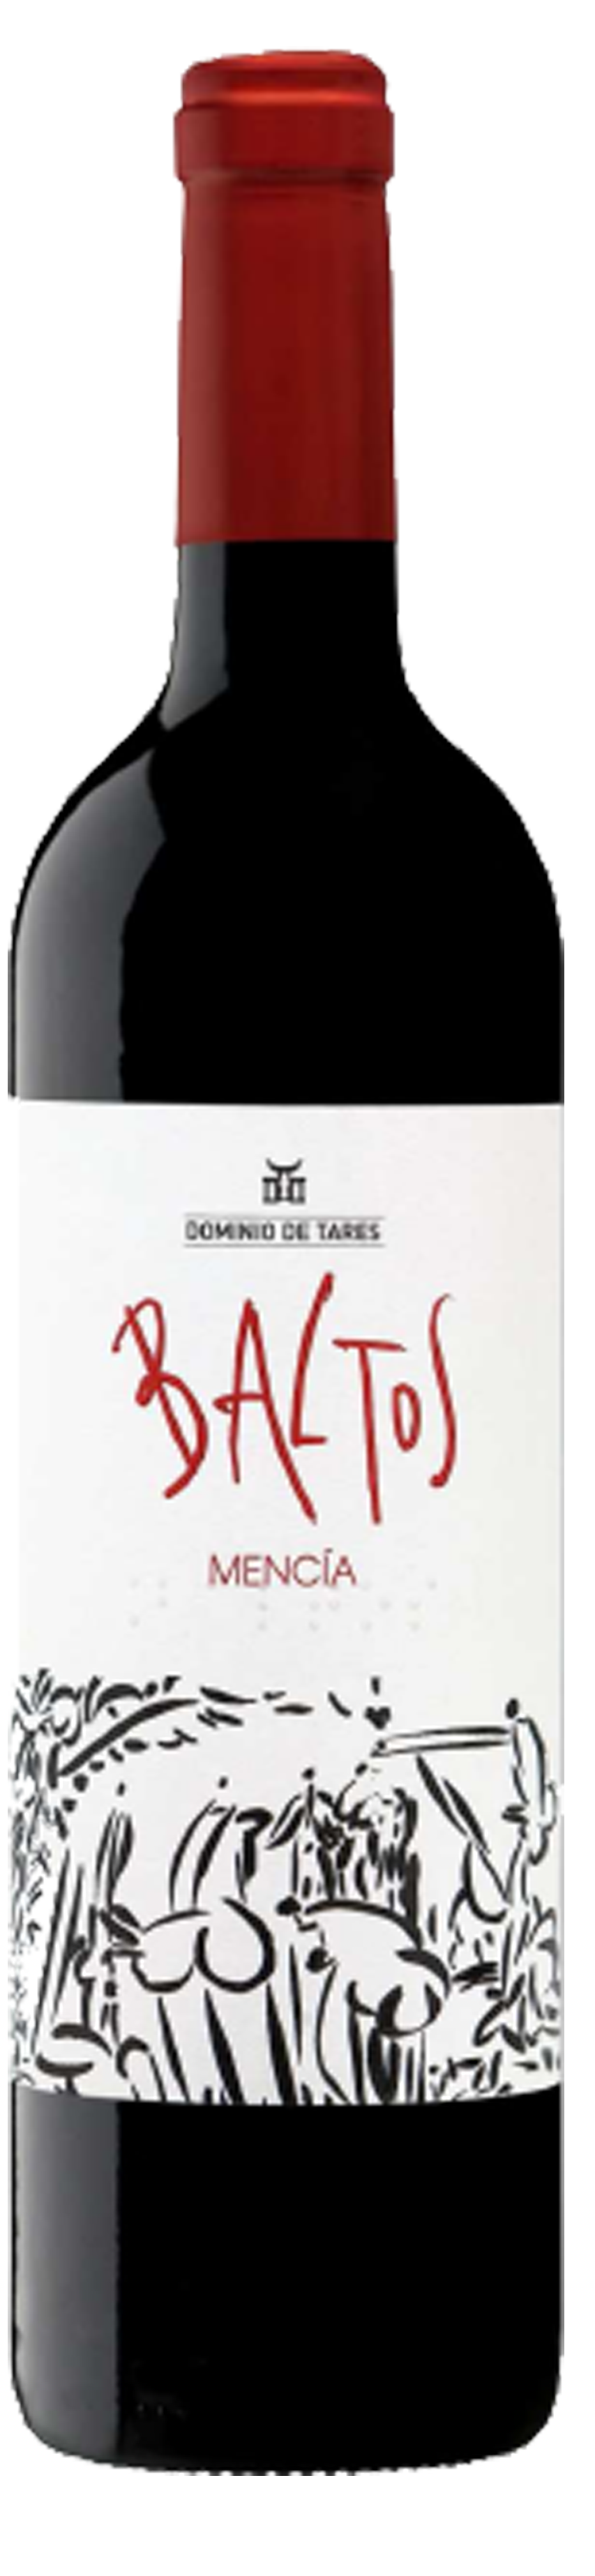 Image of product Baltos Mencía